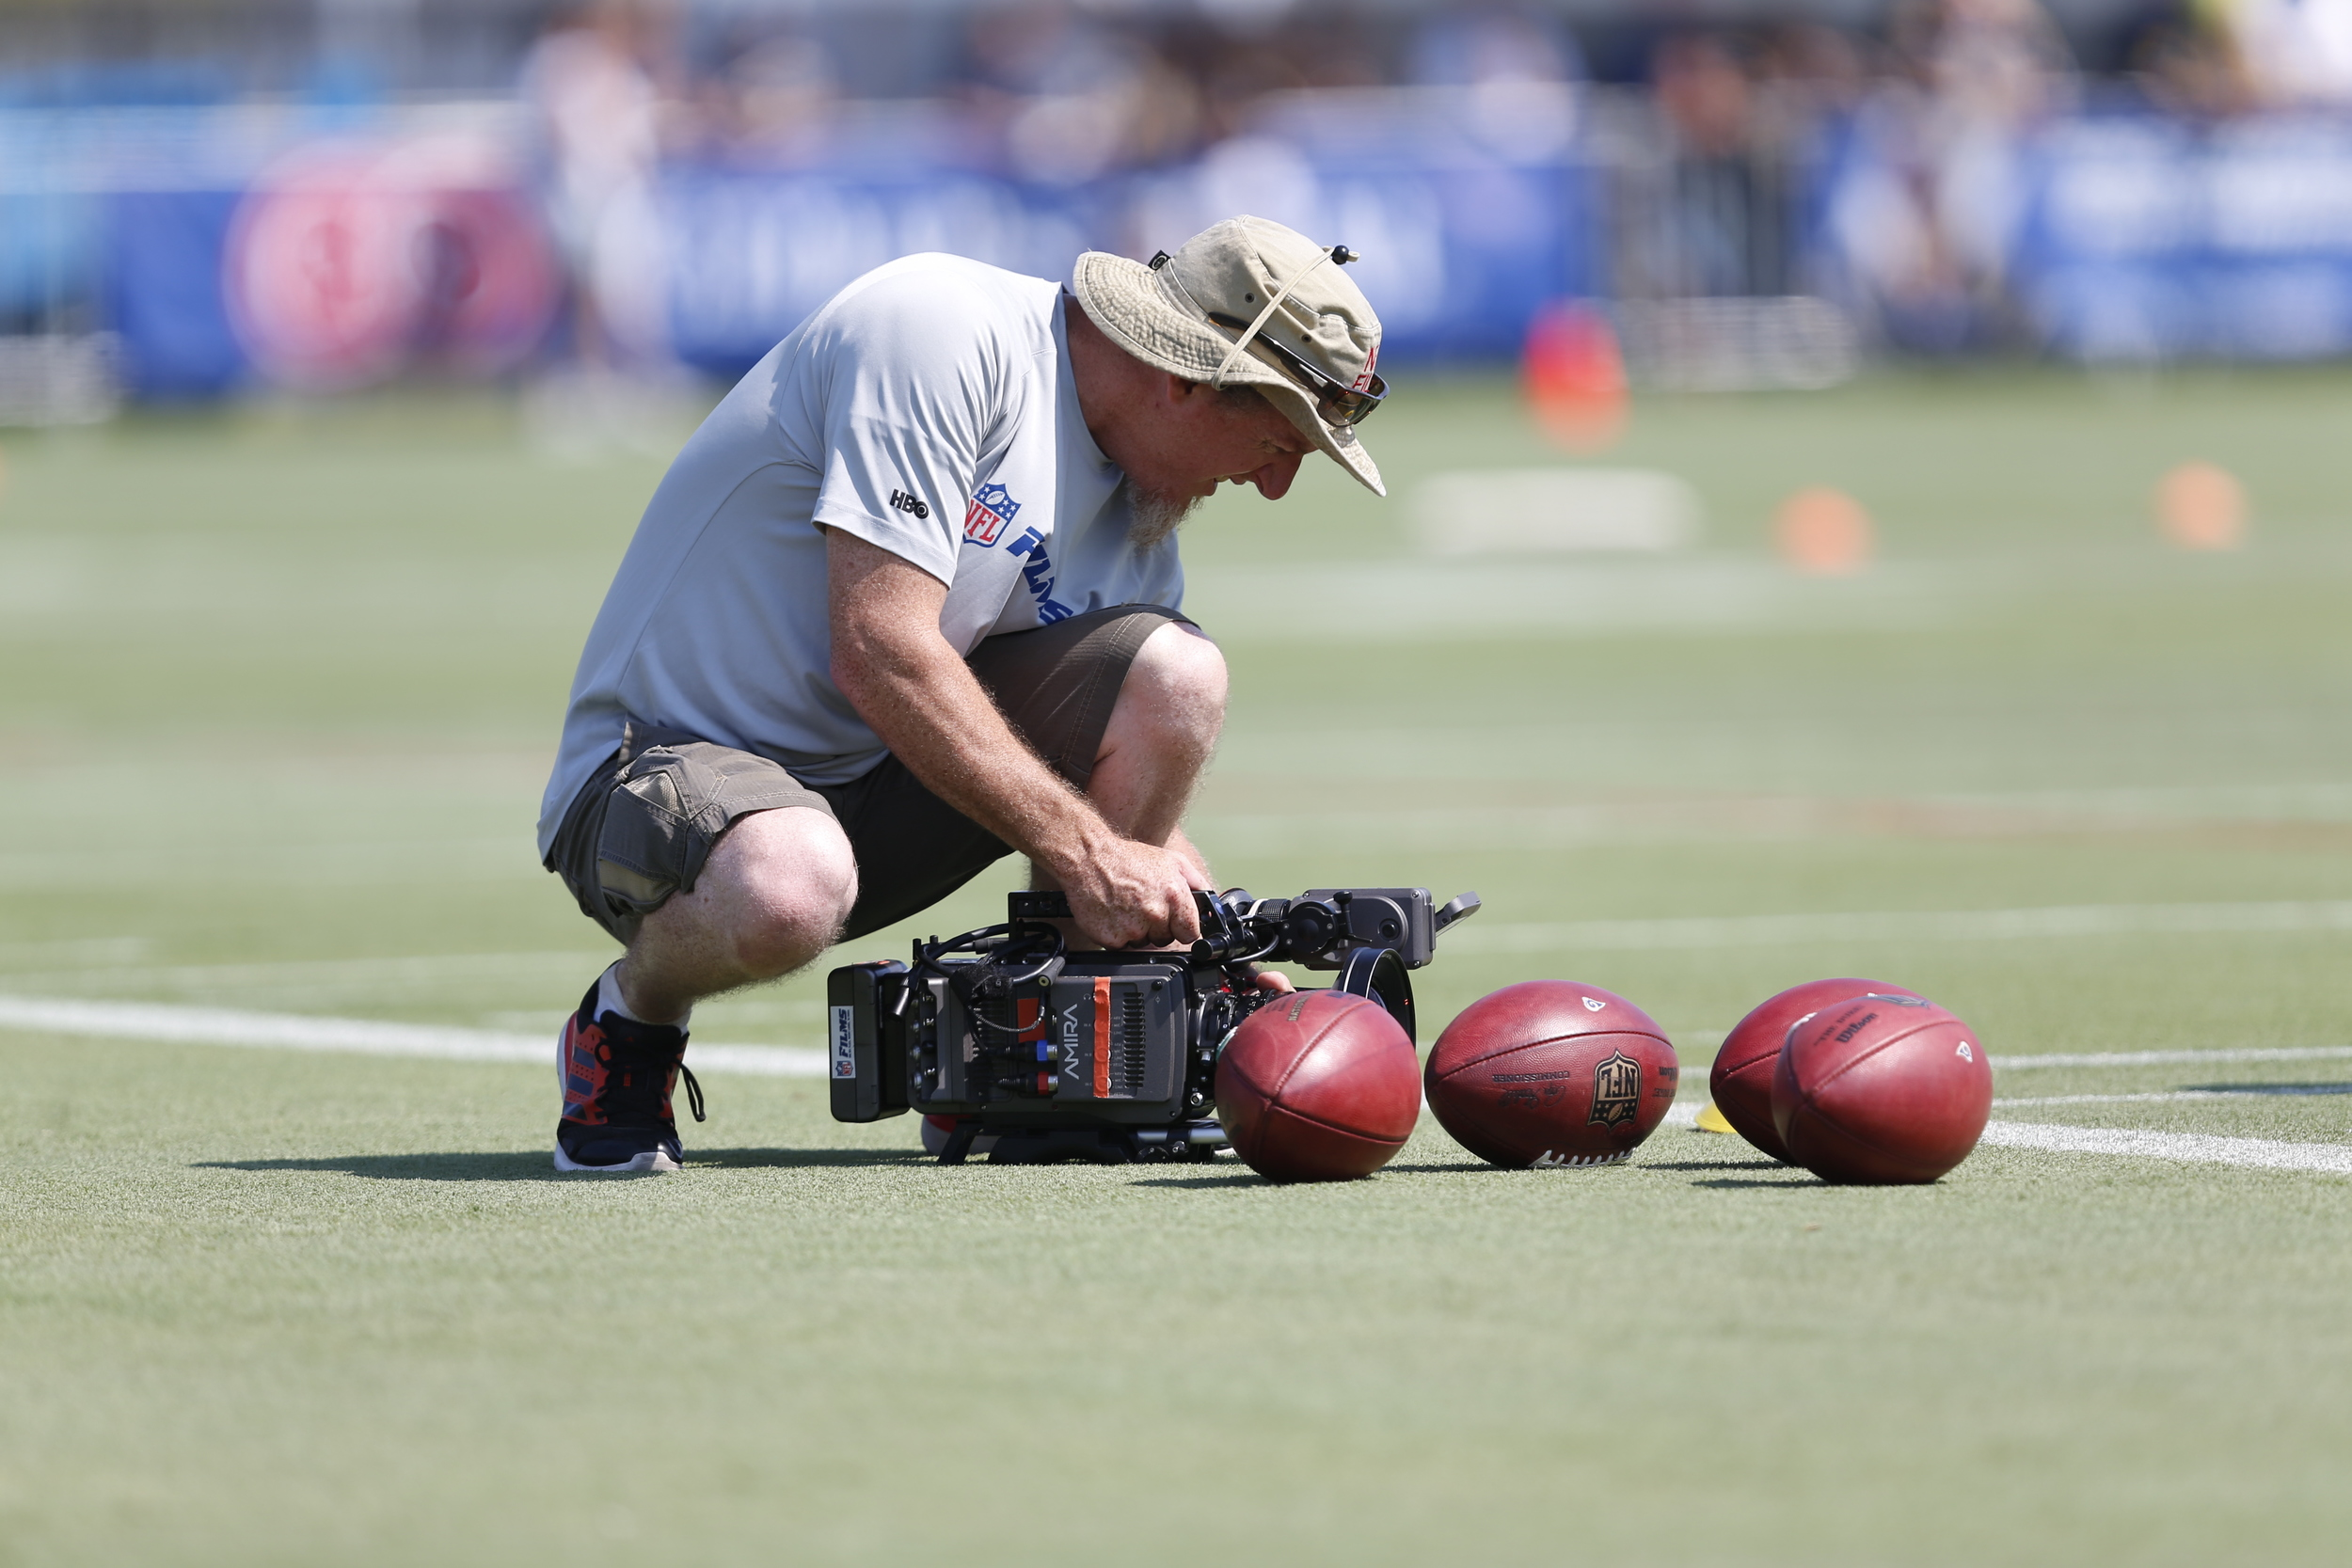 NFL Network getting some closeups of the balls.